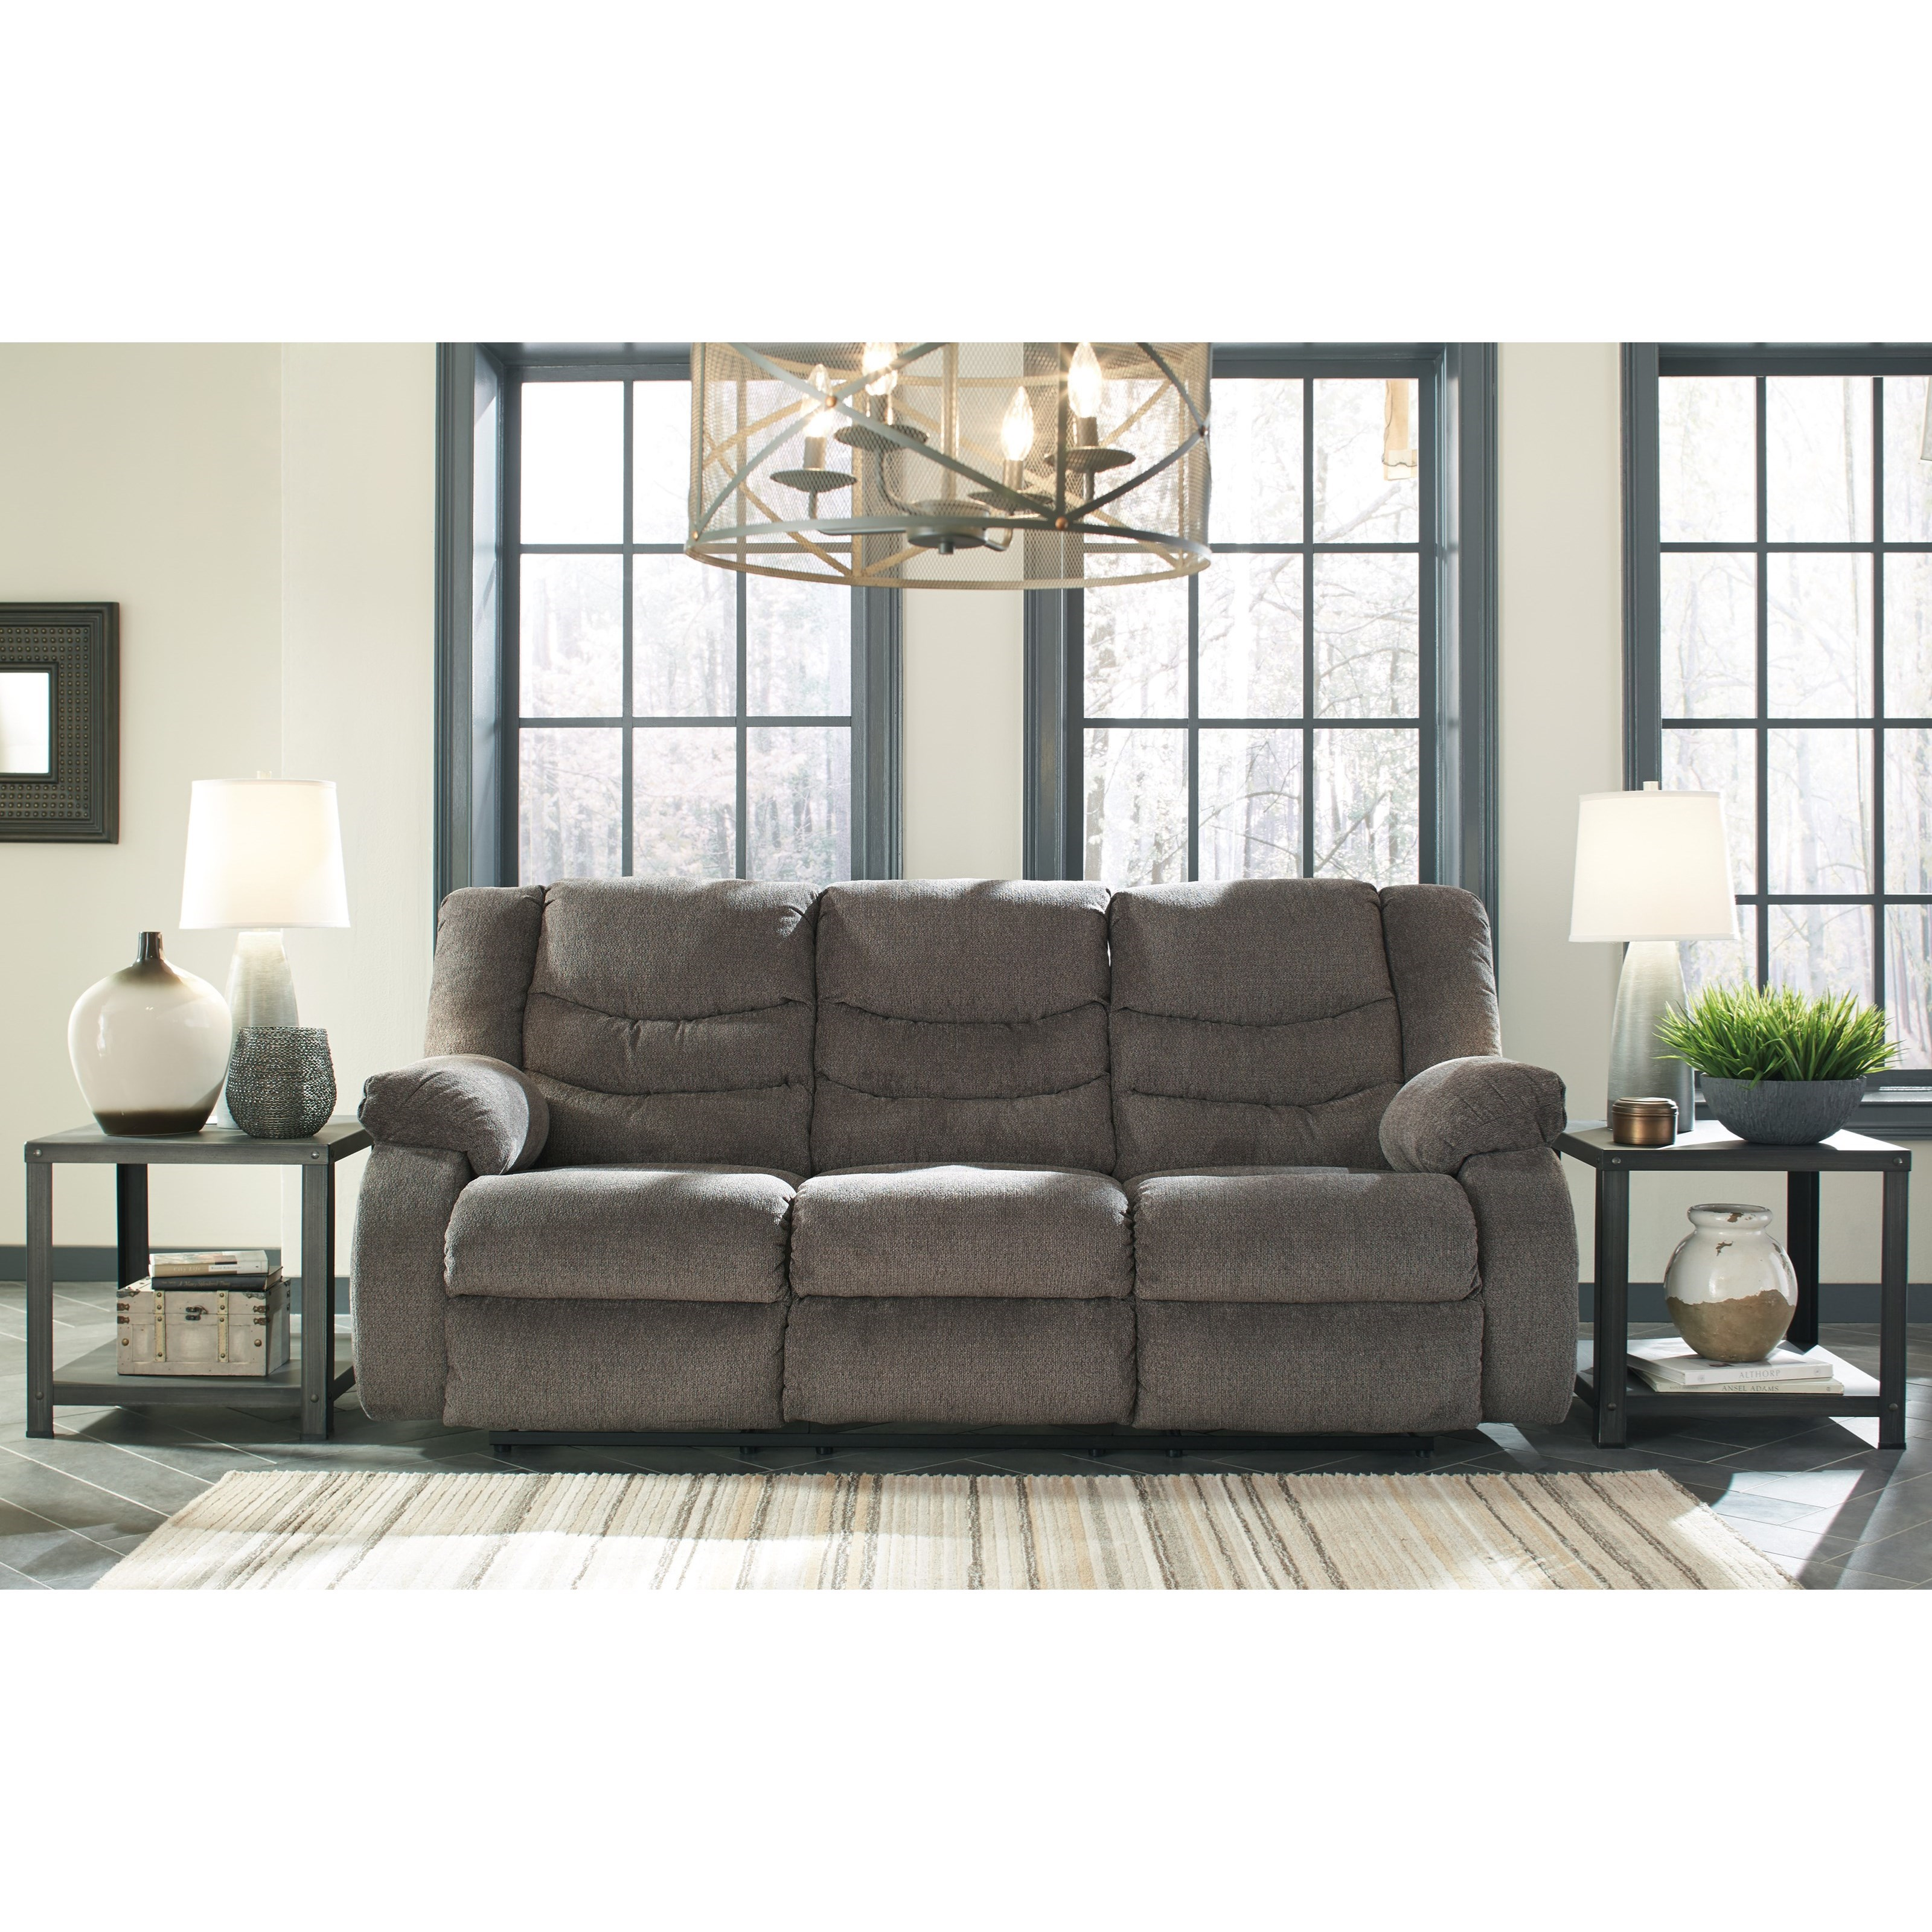 Chenille Skirted Sofa: Contemporary Reclining Sofa By Signature Design By Ashley